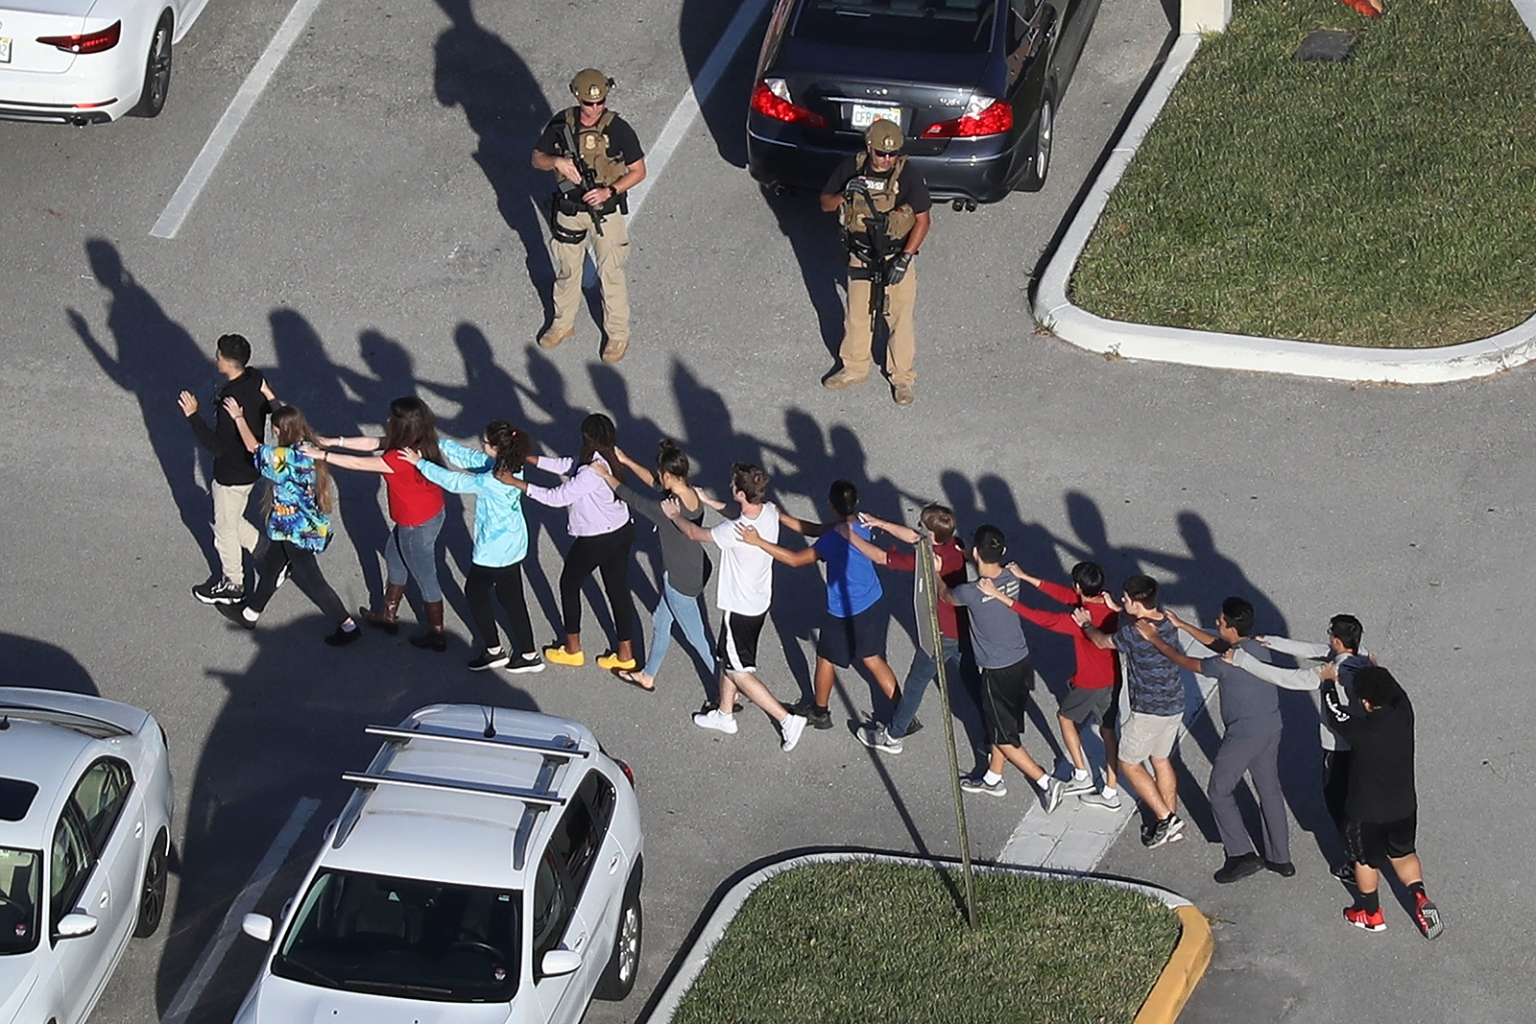 Students are brought out of Marjory Stoneman Douglas High School in Parkland, Florida, after a shooter at the school killed 17 people on Feb. 14. Joe Raedle/Getty Images